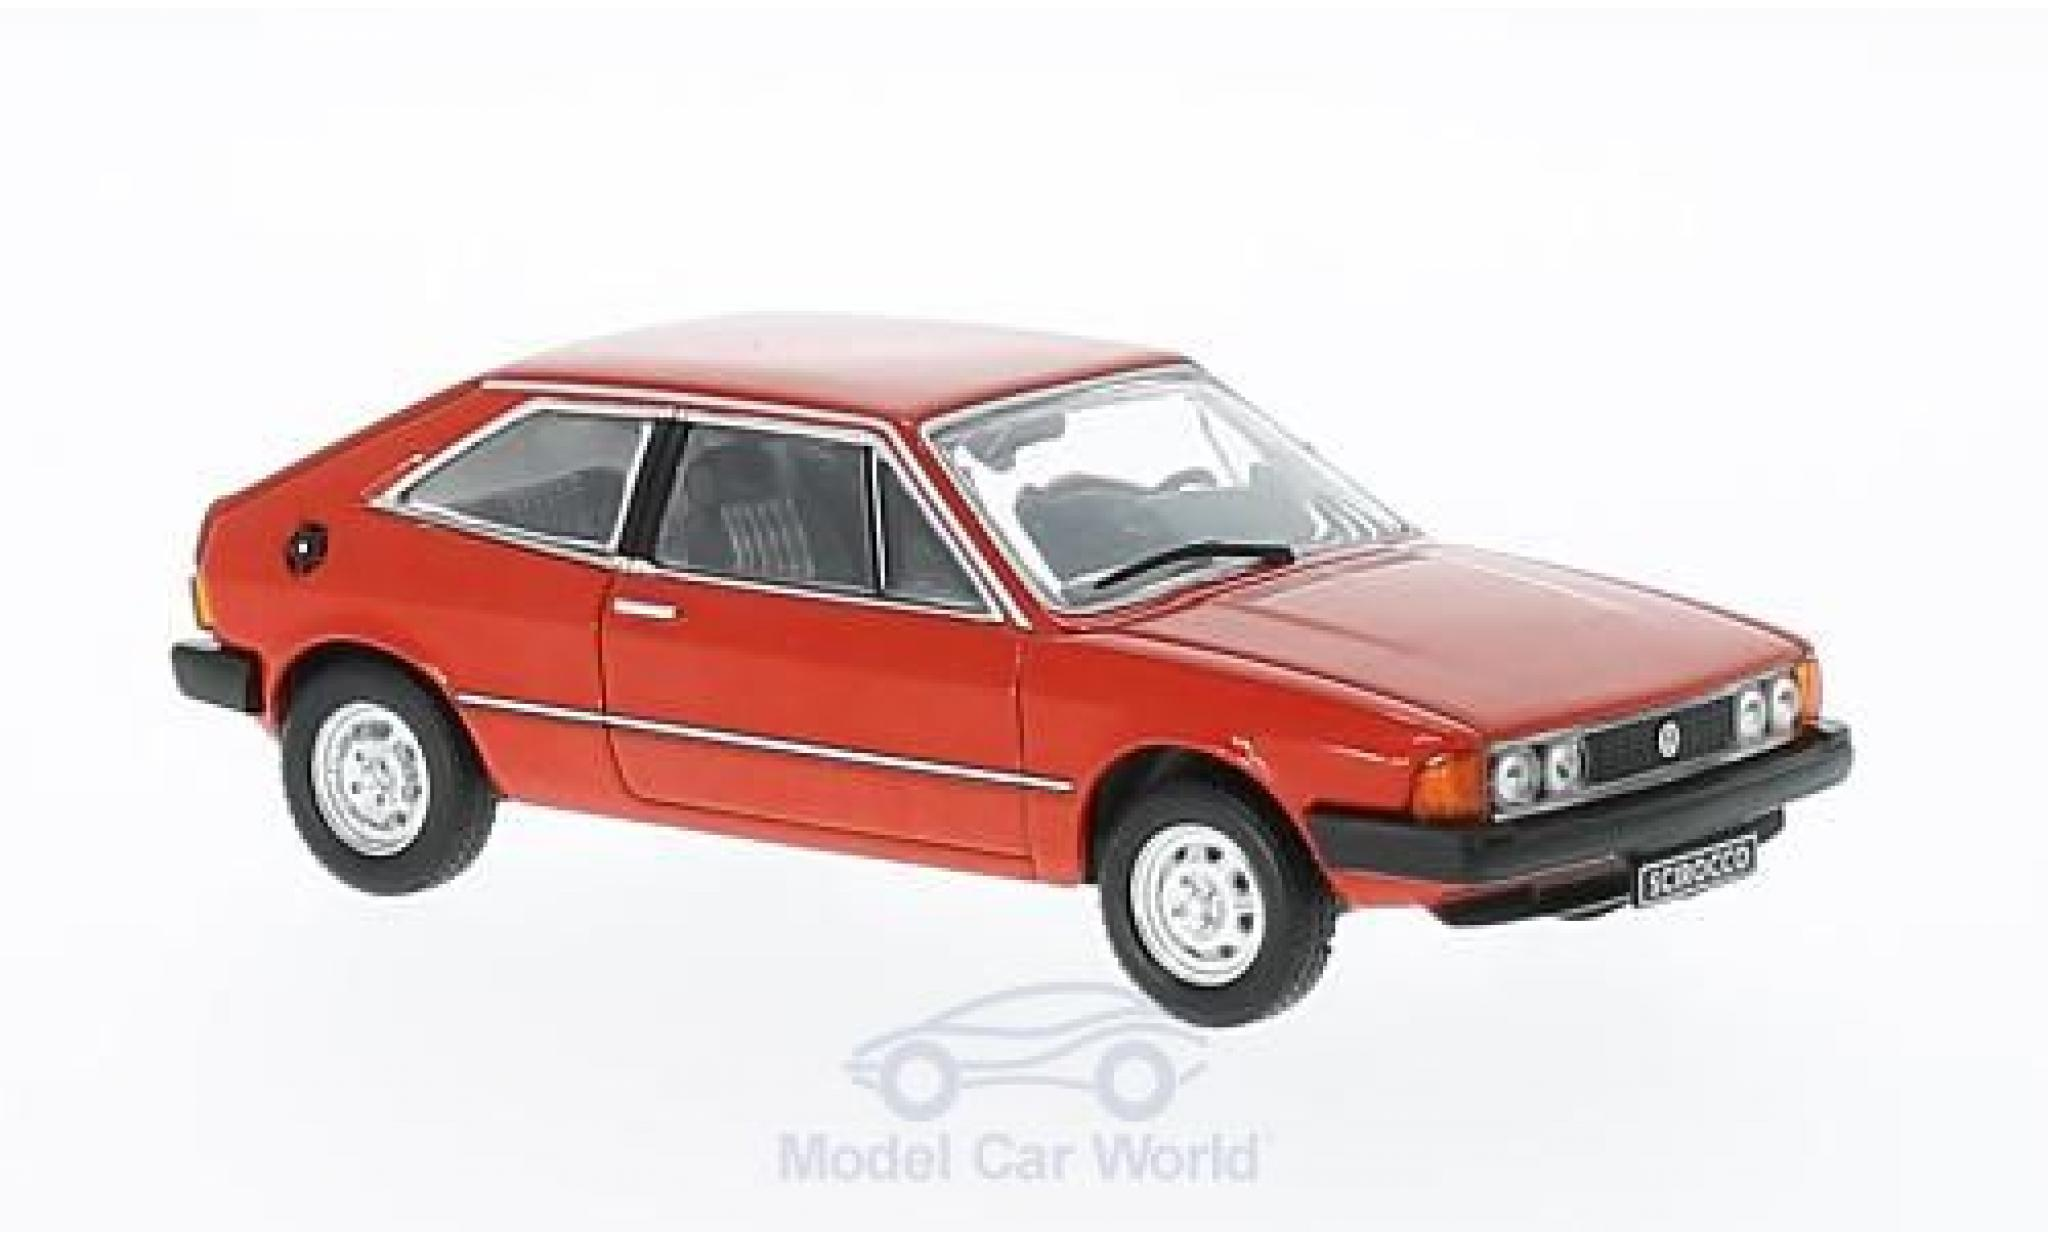 Volkswagen Scirocco 1/43 Triple 9 Collection red 1980